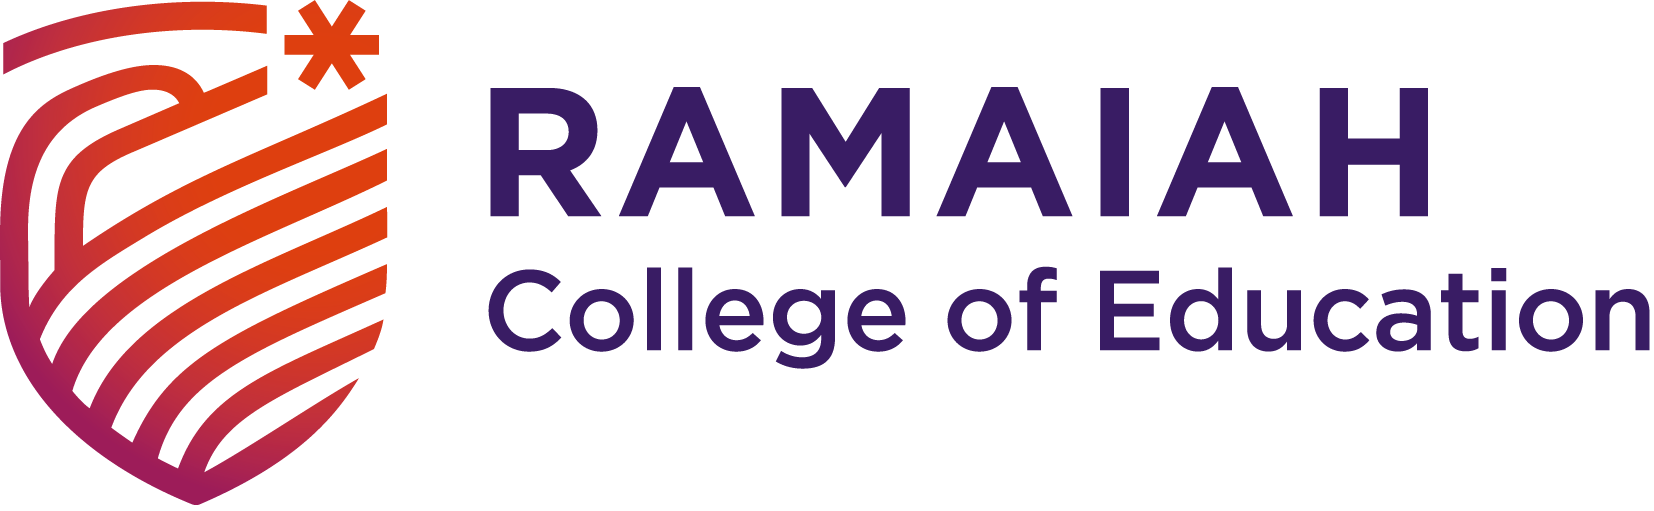 Ramaiah College of Education